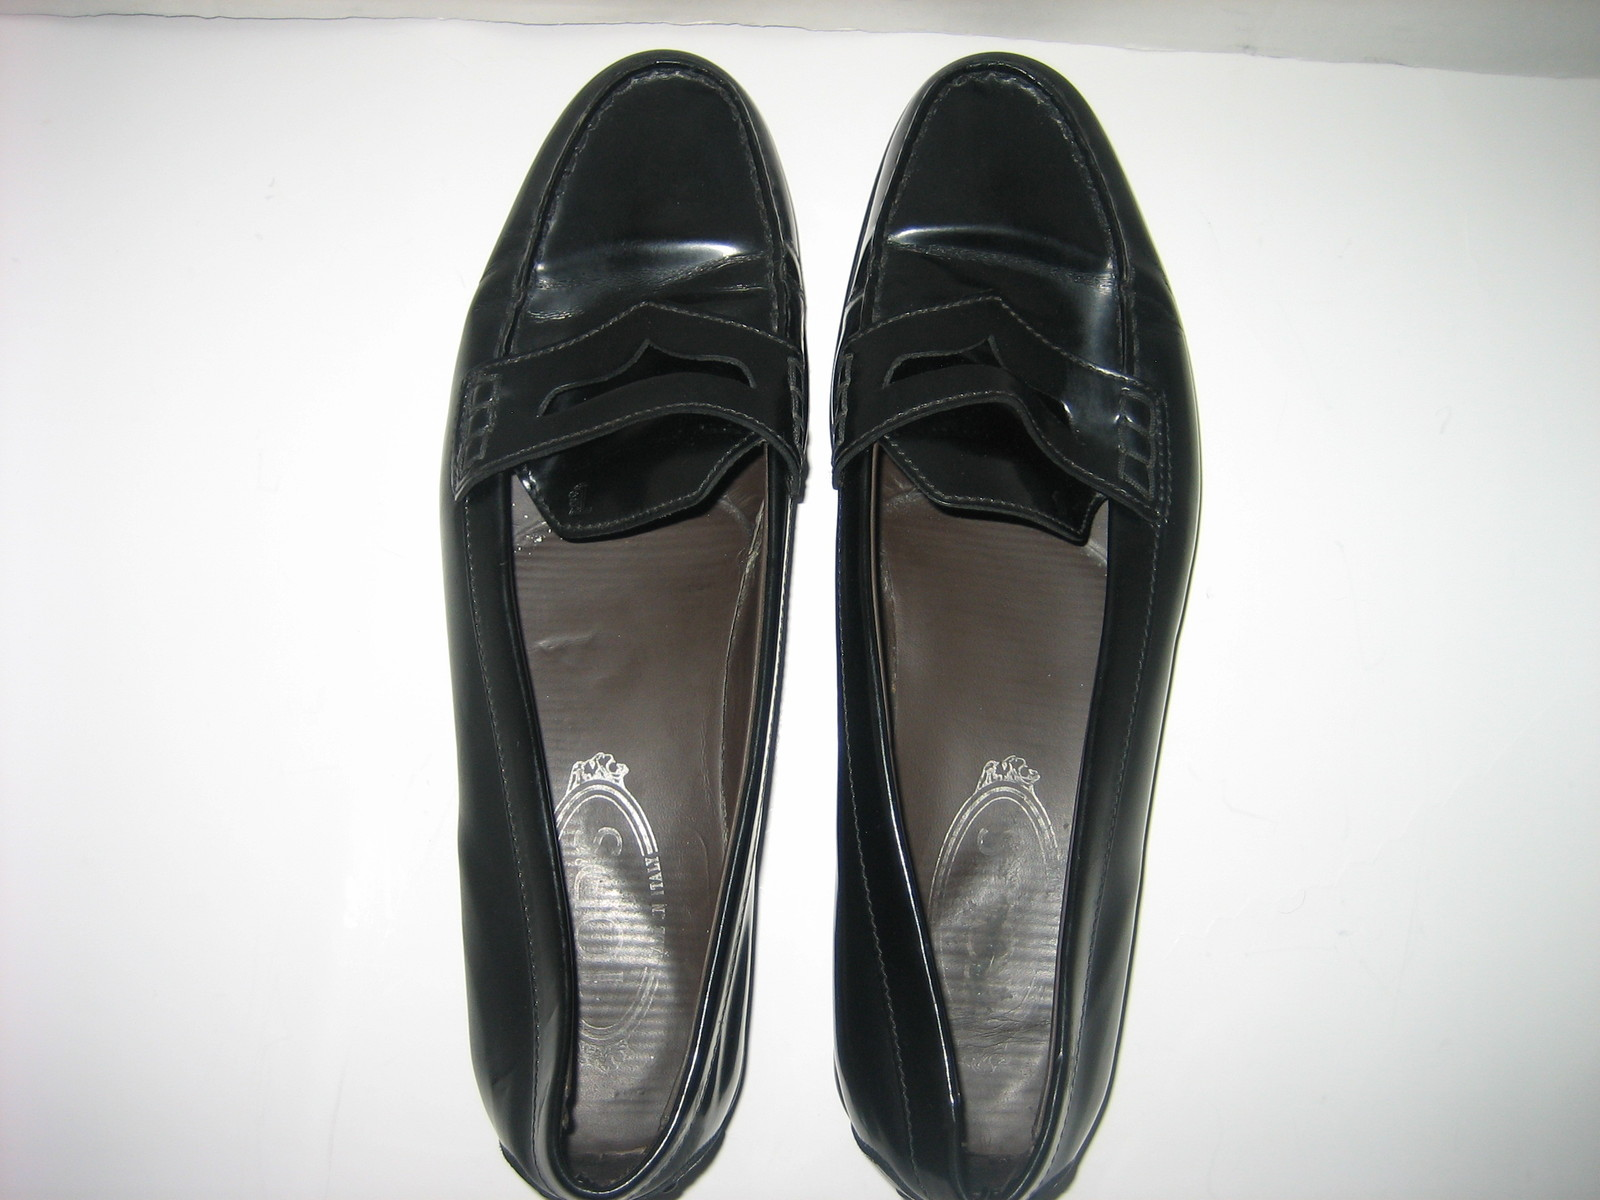 TOD'S Women's Black Patent Leather Penny Loafers Made in ...